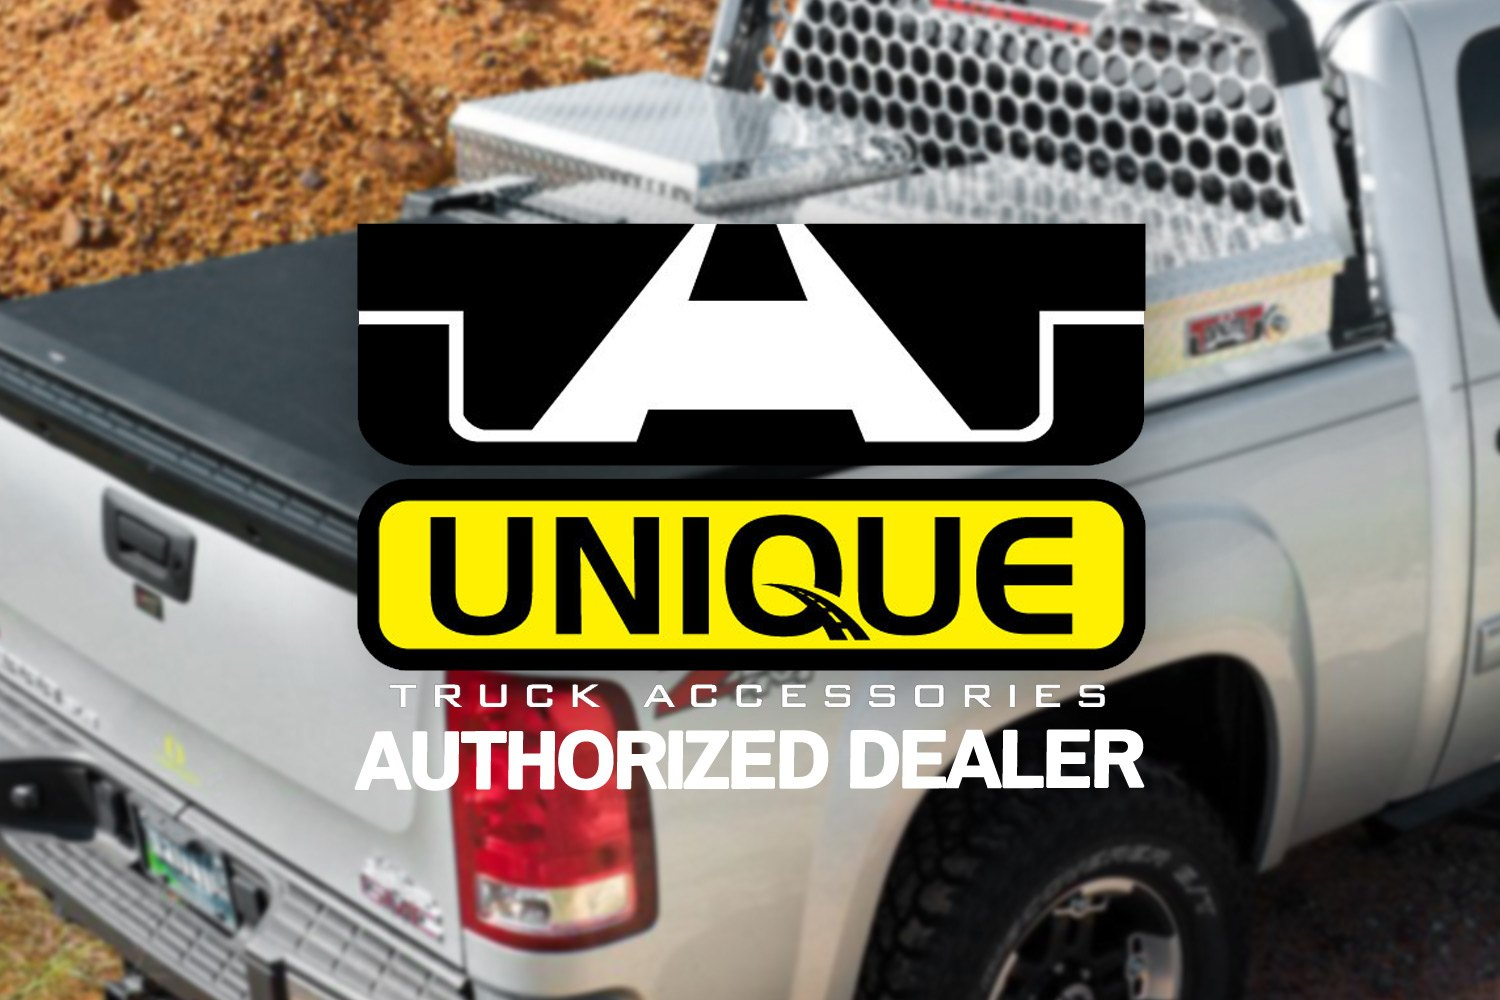 Unique truck accessories authorized dealer